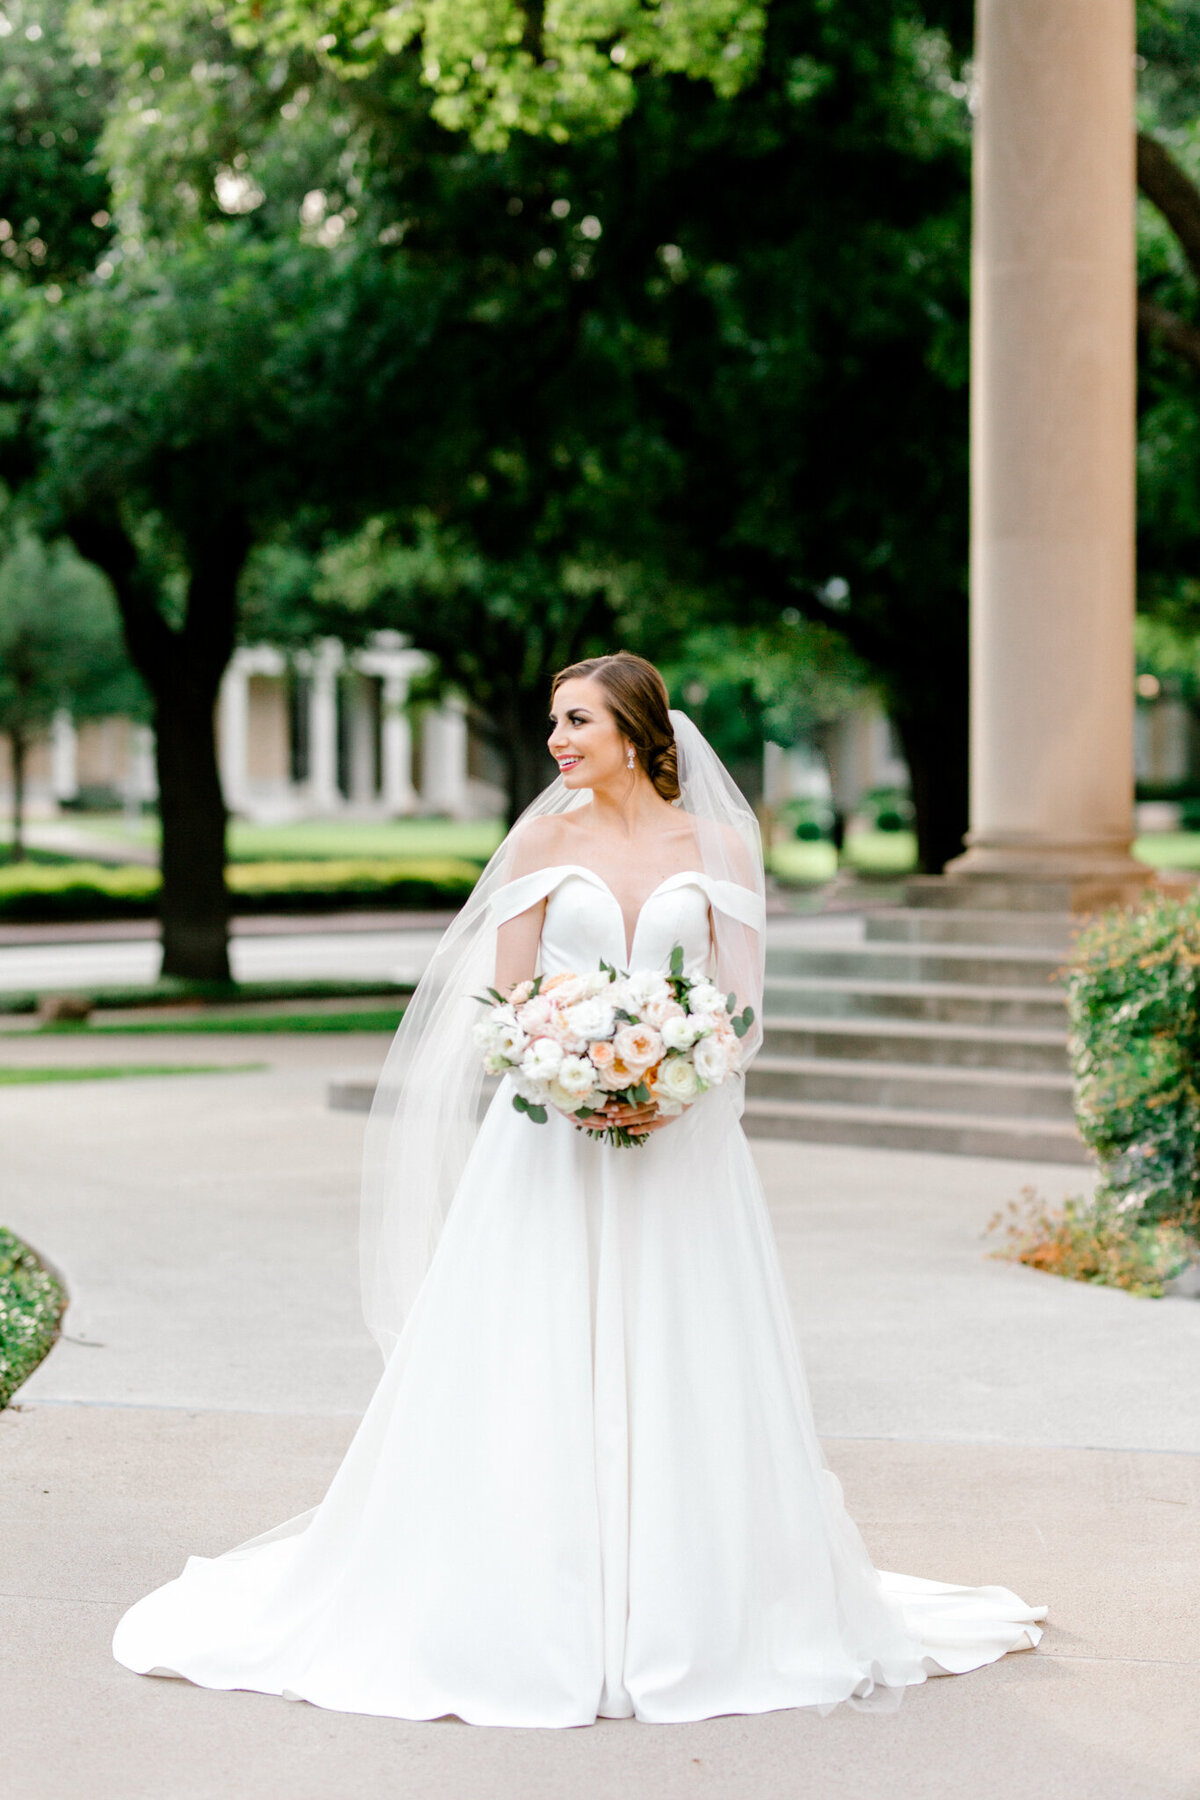 Lexi Broughton Bridal Portraits at TCU Robert Carr Chapel Fort Worth, Texas | Sami Kathryn Photography | Dallas DFW Wedding Photographer | R. Love Floral Blush and Peach Bouquet-34